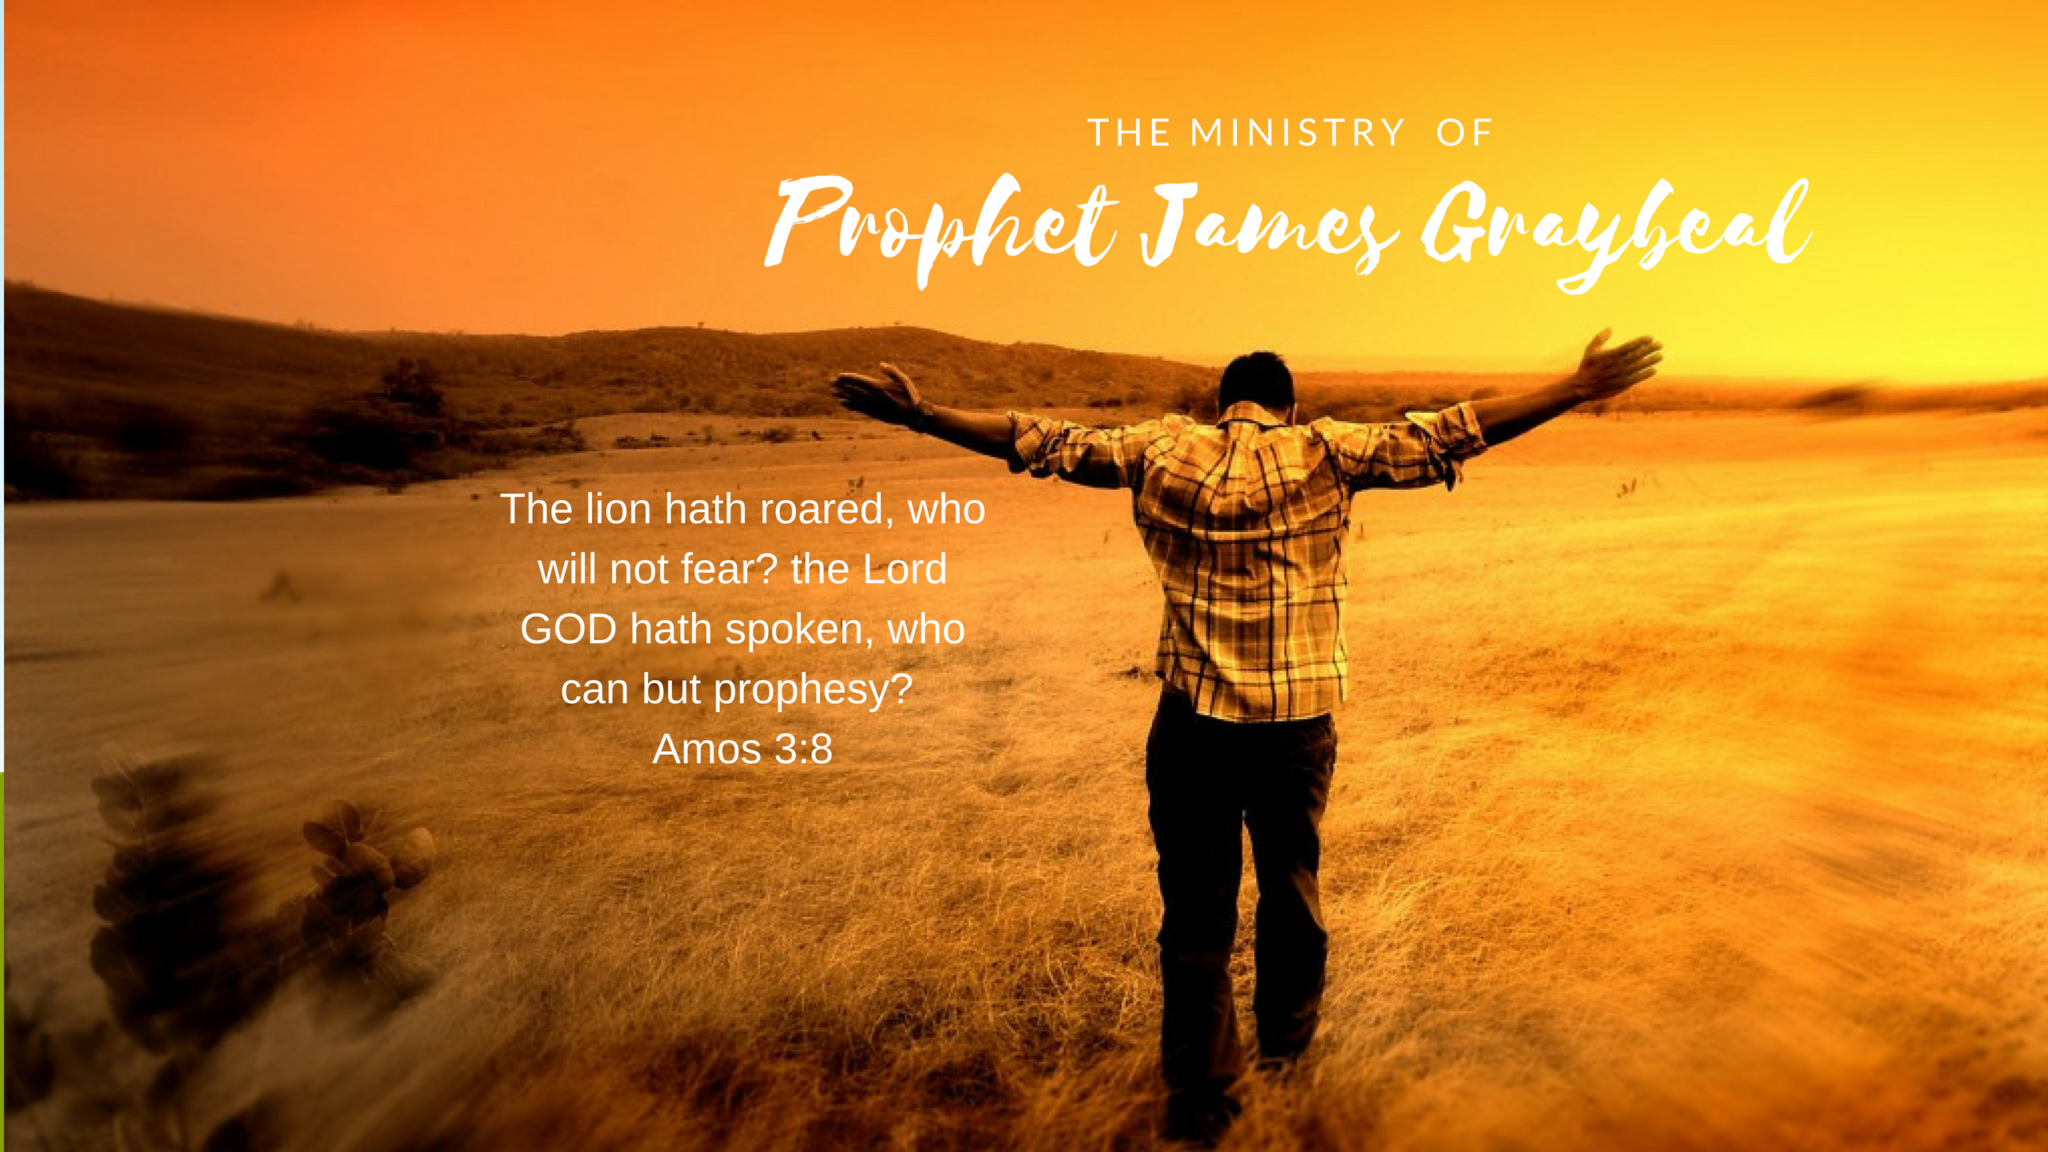 James Graybeal Ministries